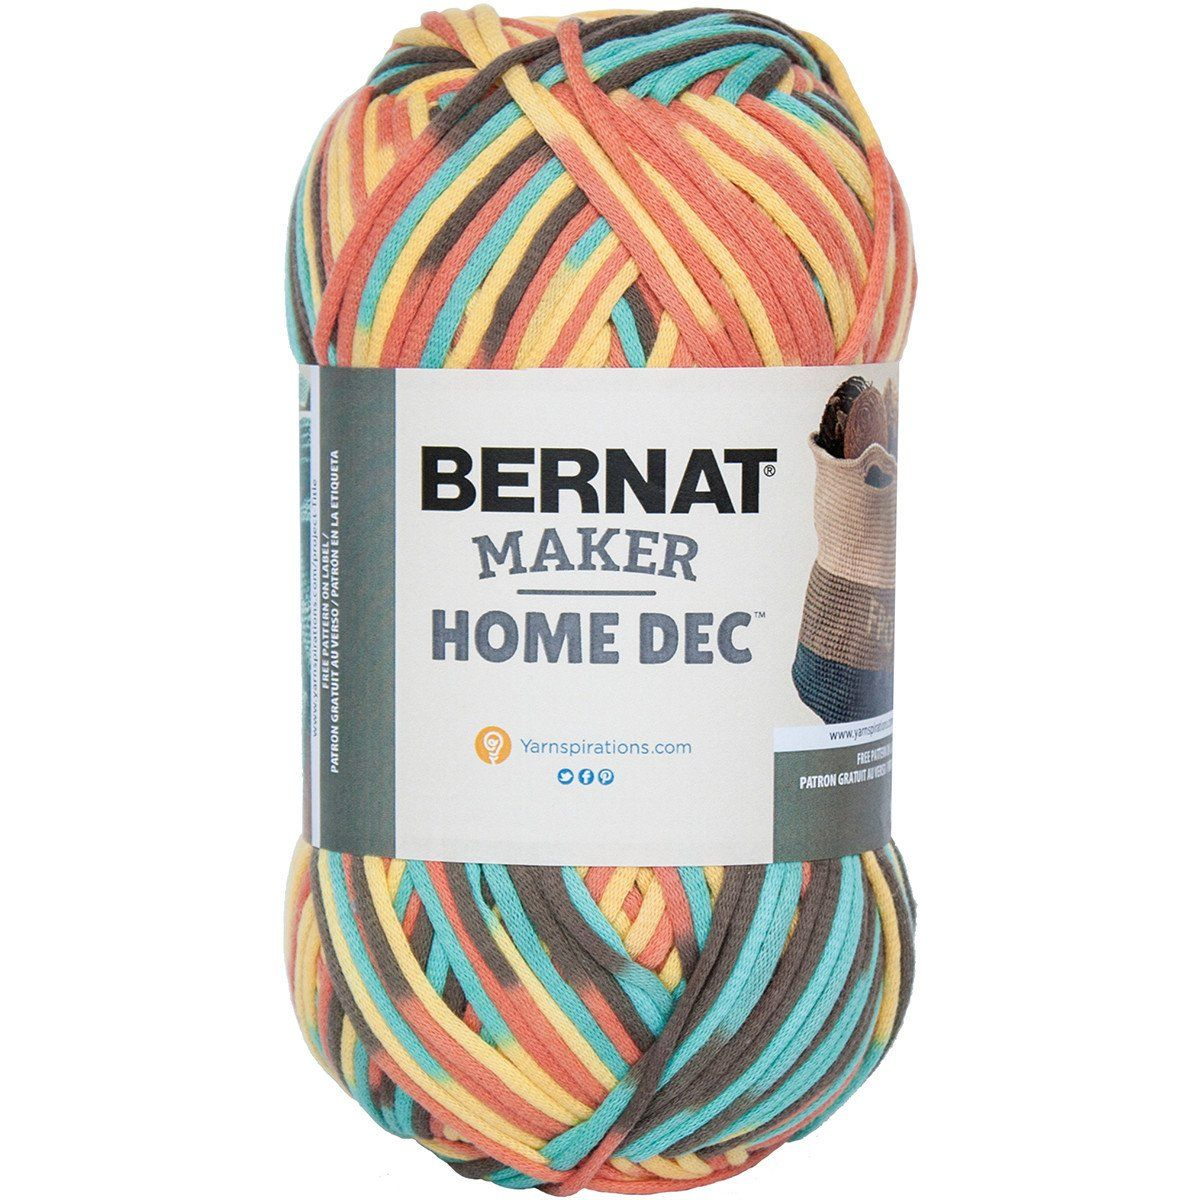 Bernat® Maker Home Dec Yarn Sunset Sea Variegate